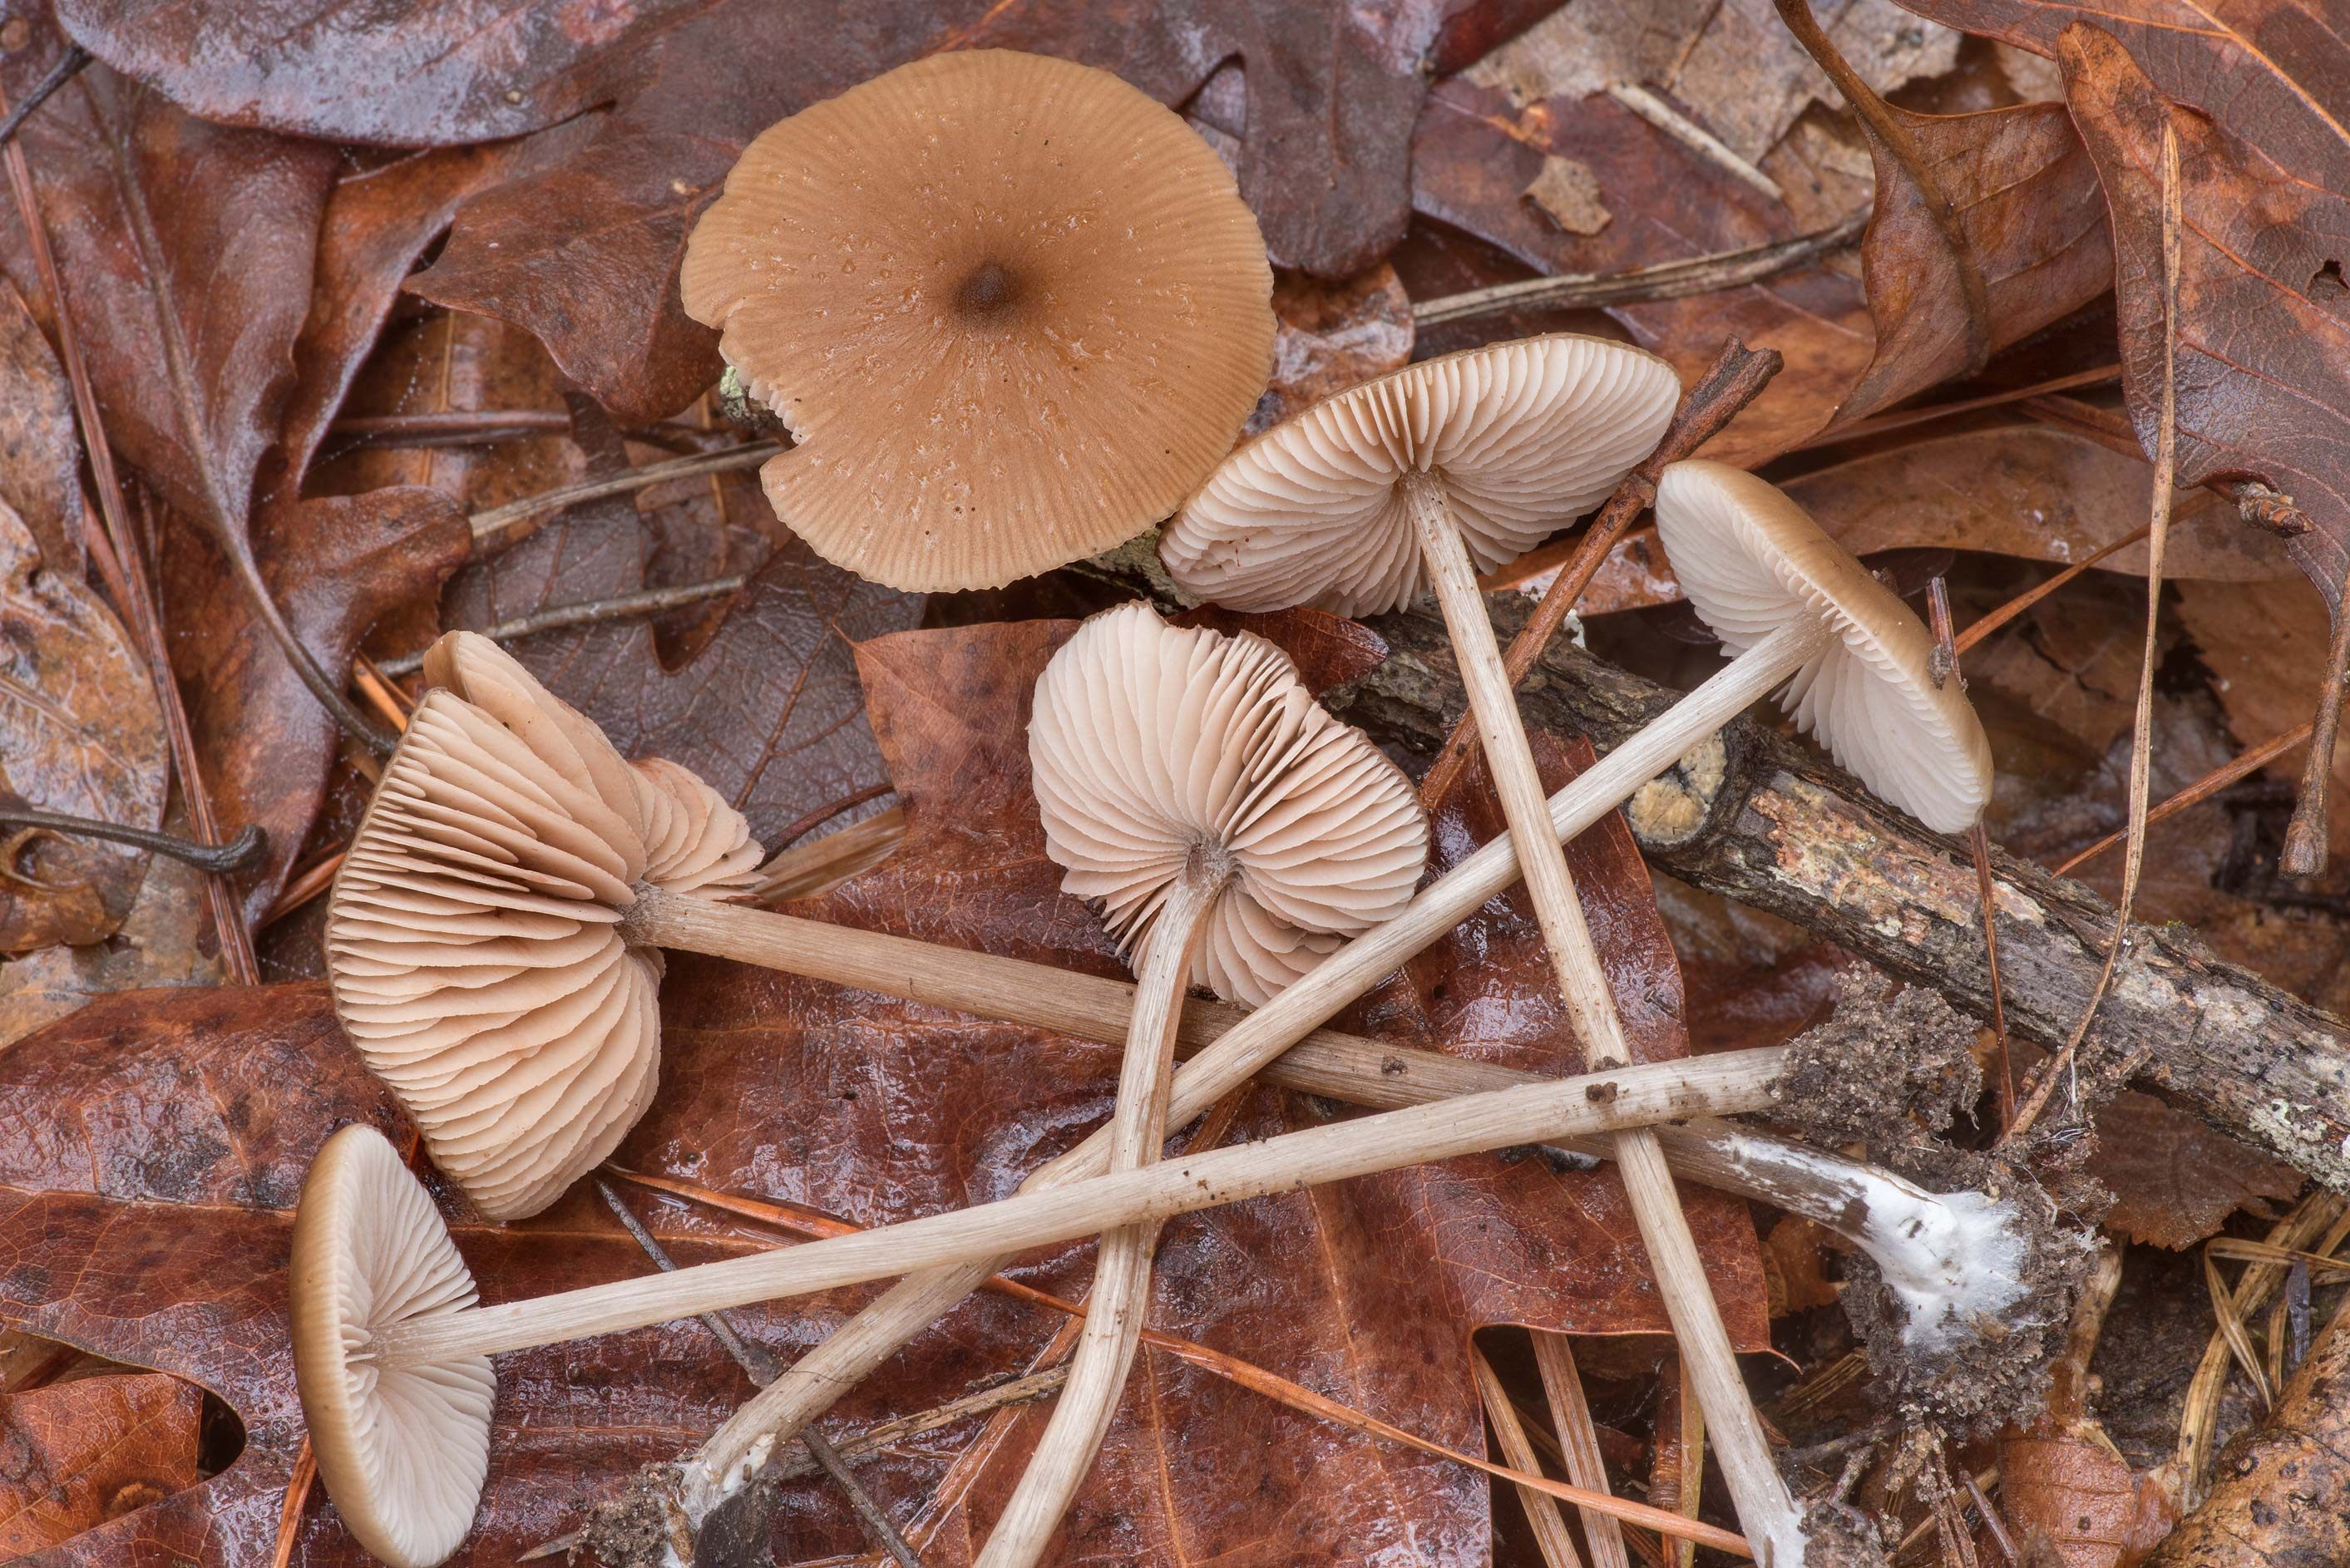 Pinkgill mushrooms Entoloma hirtipes among oak...National Forest near Huntsville. Texas